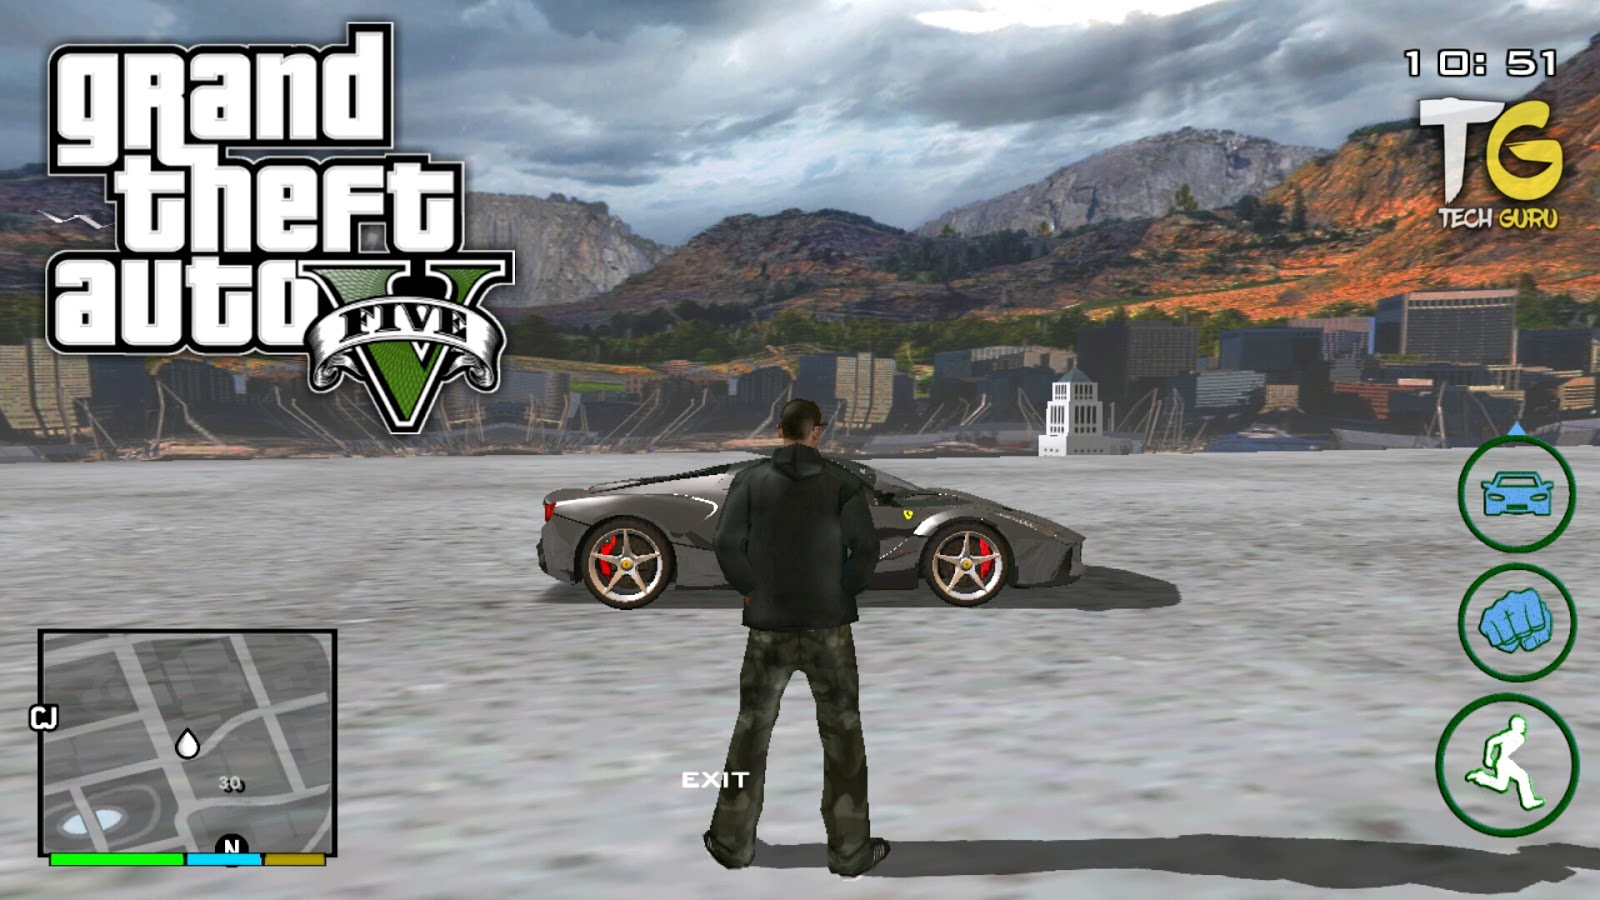 Gta 5 Real Mod For Android - Gamerking-6159